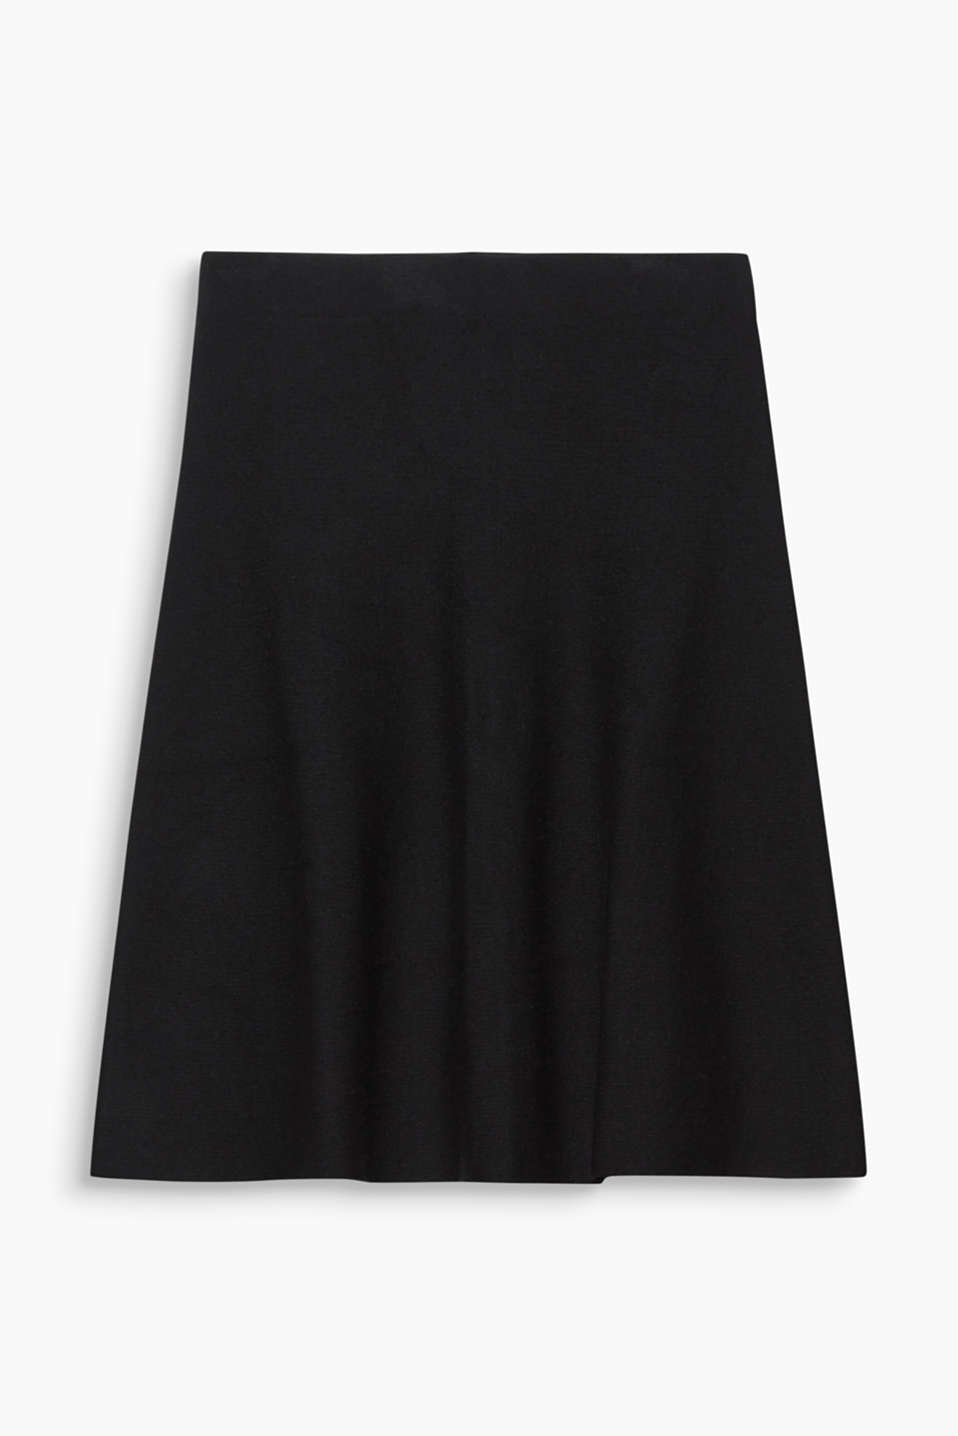 This knit skirt in the latest midi length and timeless simple design makes the perfect essential piece.